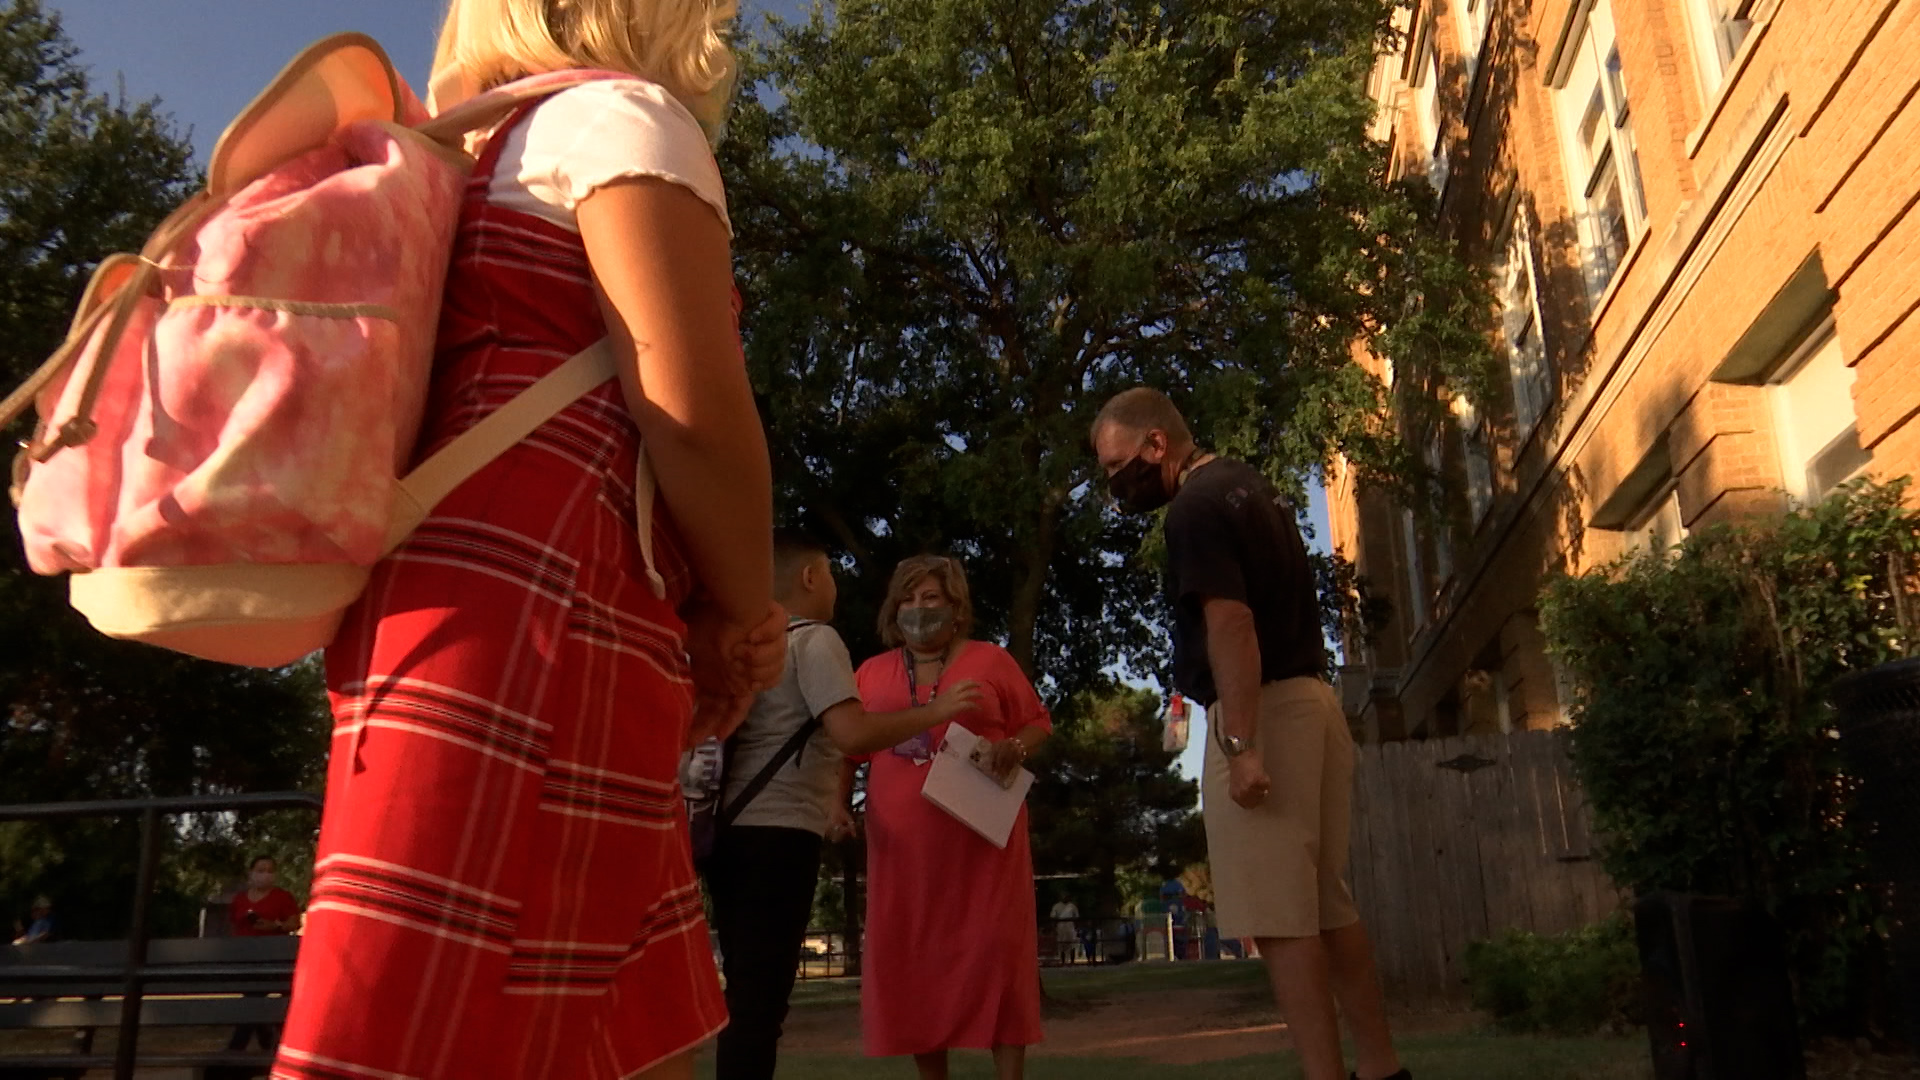 The first bell of the school year rang this morning for Wichita Falls Independent School District students and school leaders said while there is some anxiety because of the unknowns going into this year, they are ready to get back in the classrooms.